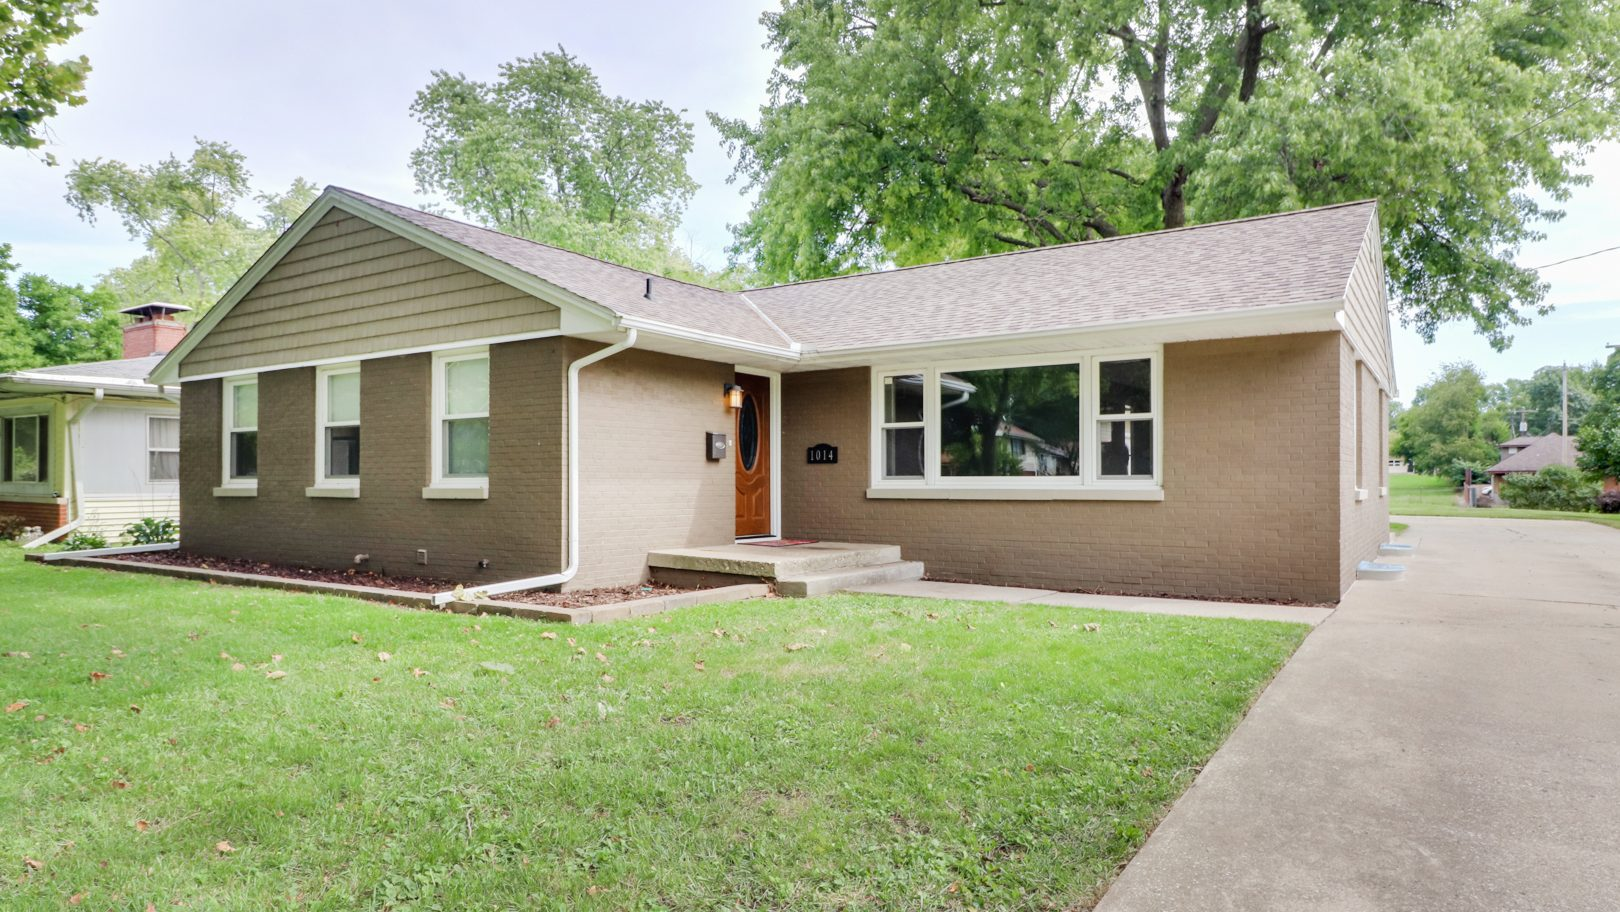 1014 Franklin Ave, Normal, IL 61761 – SOLD